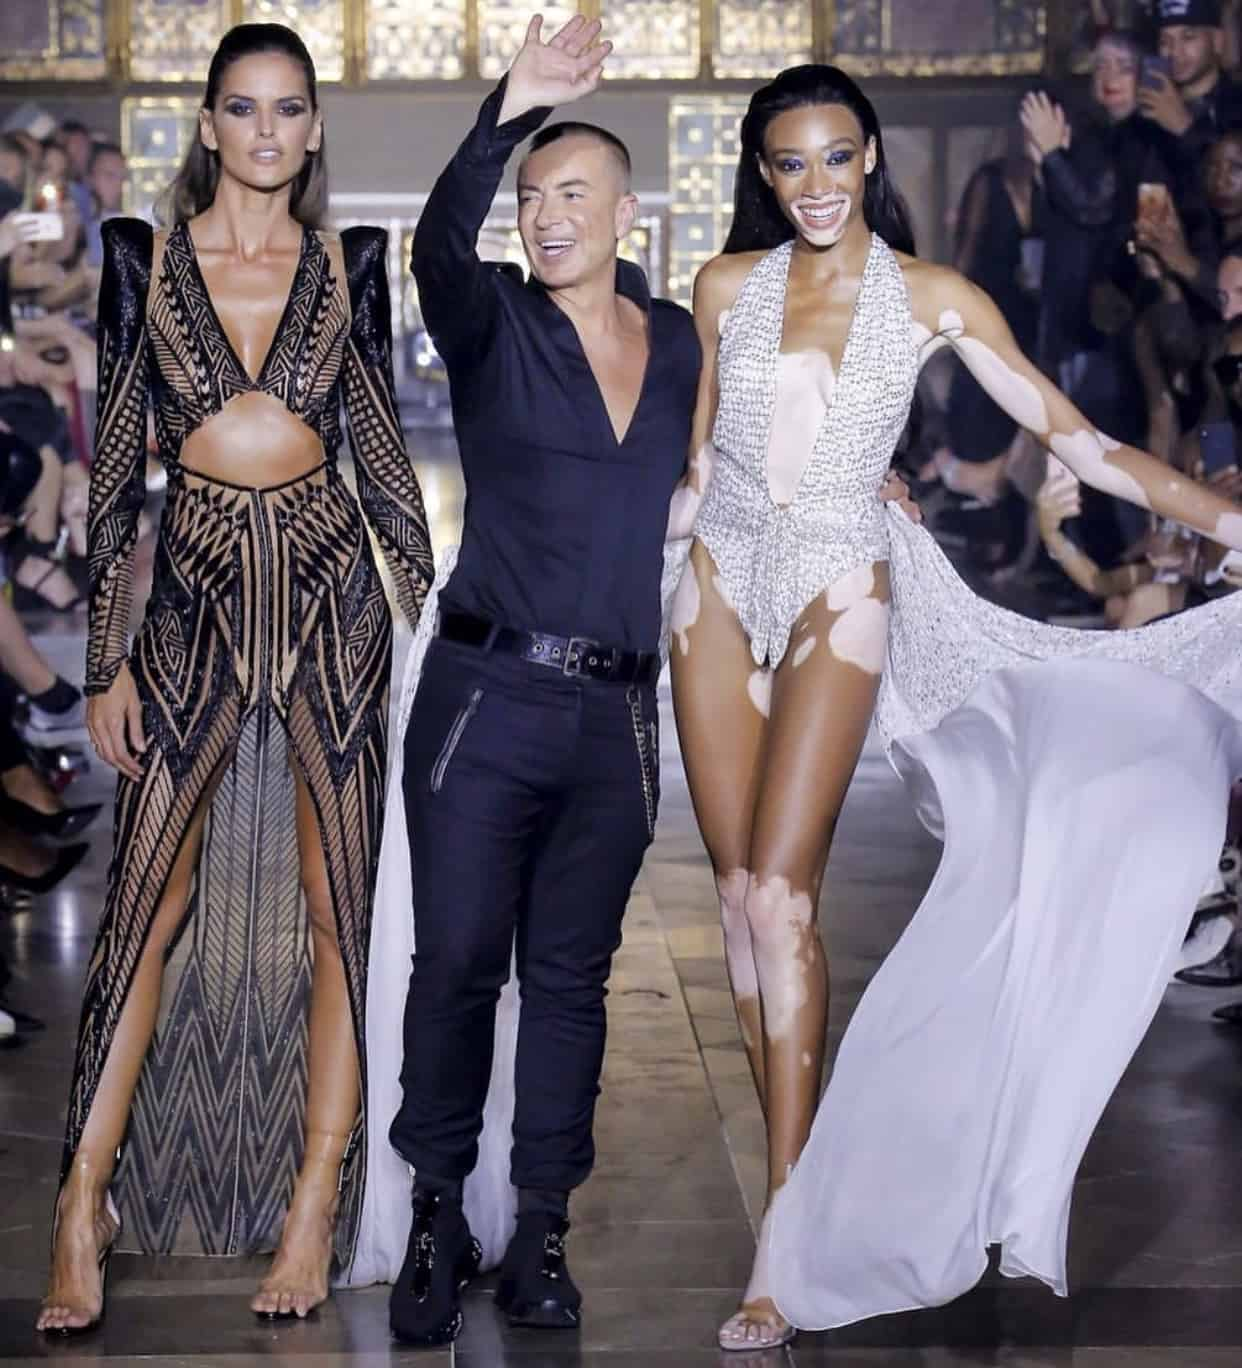 Julien Macdonald SS19 Show at London Fashion Week